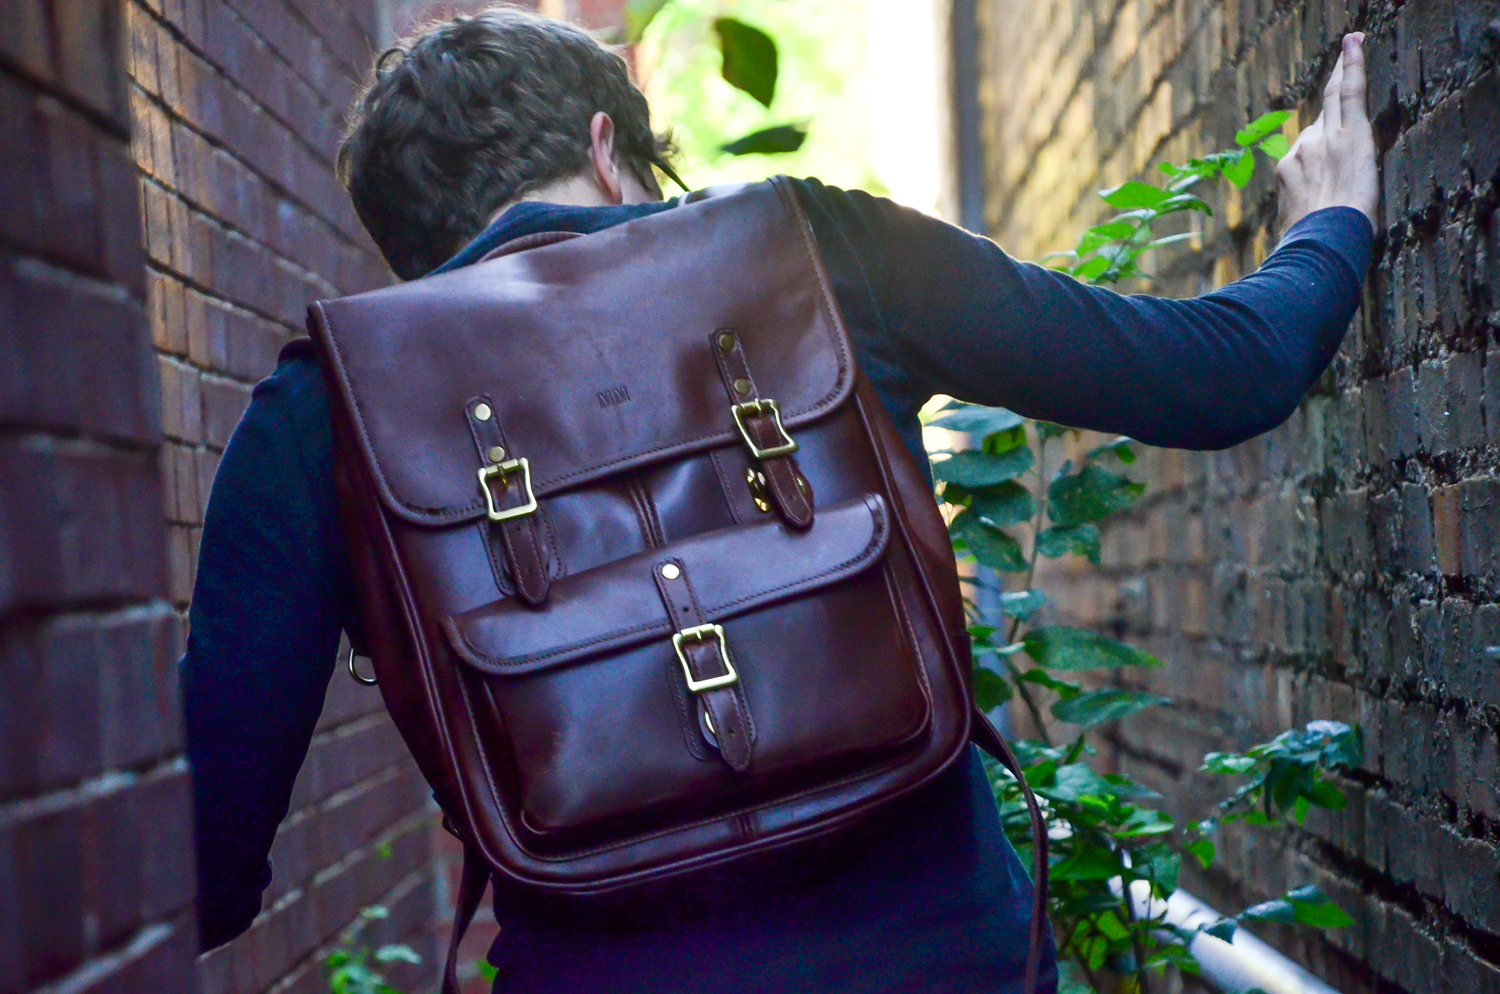 Foraging through the urban jungle with JW Hulme leather bag on my back